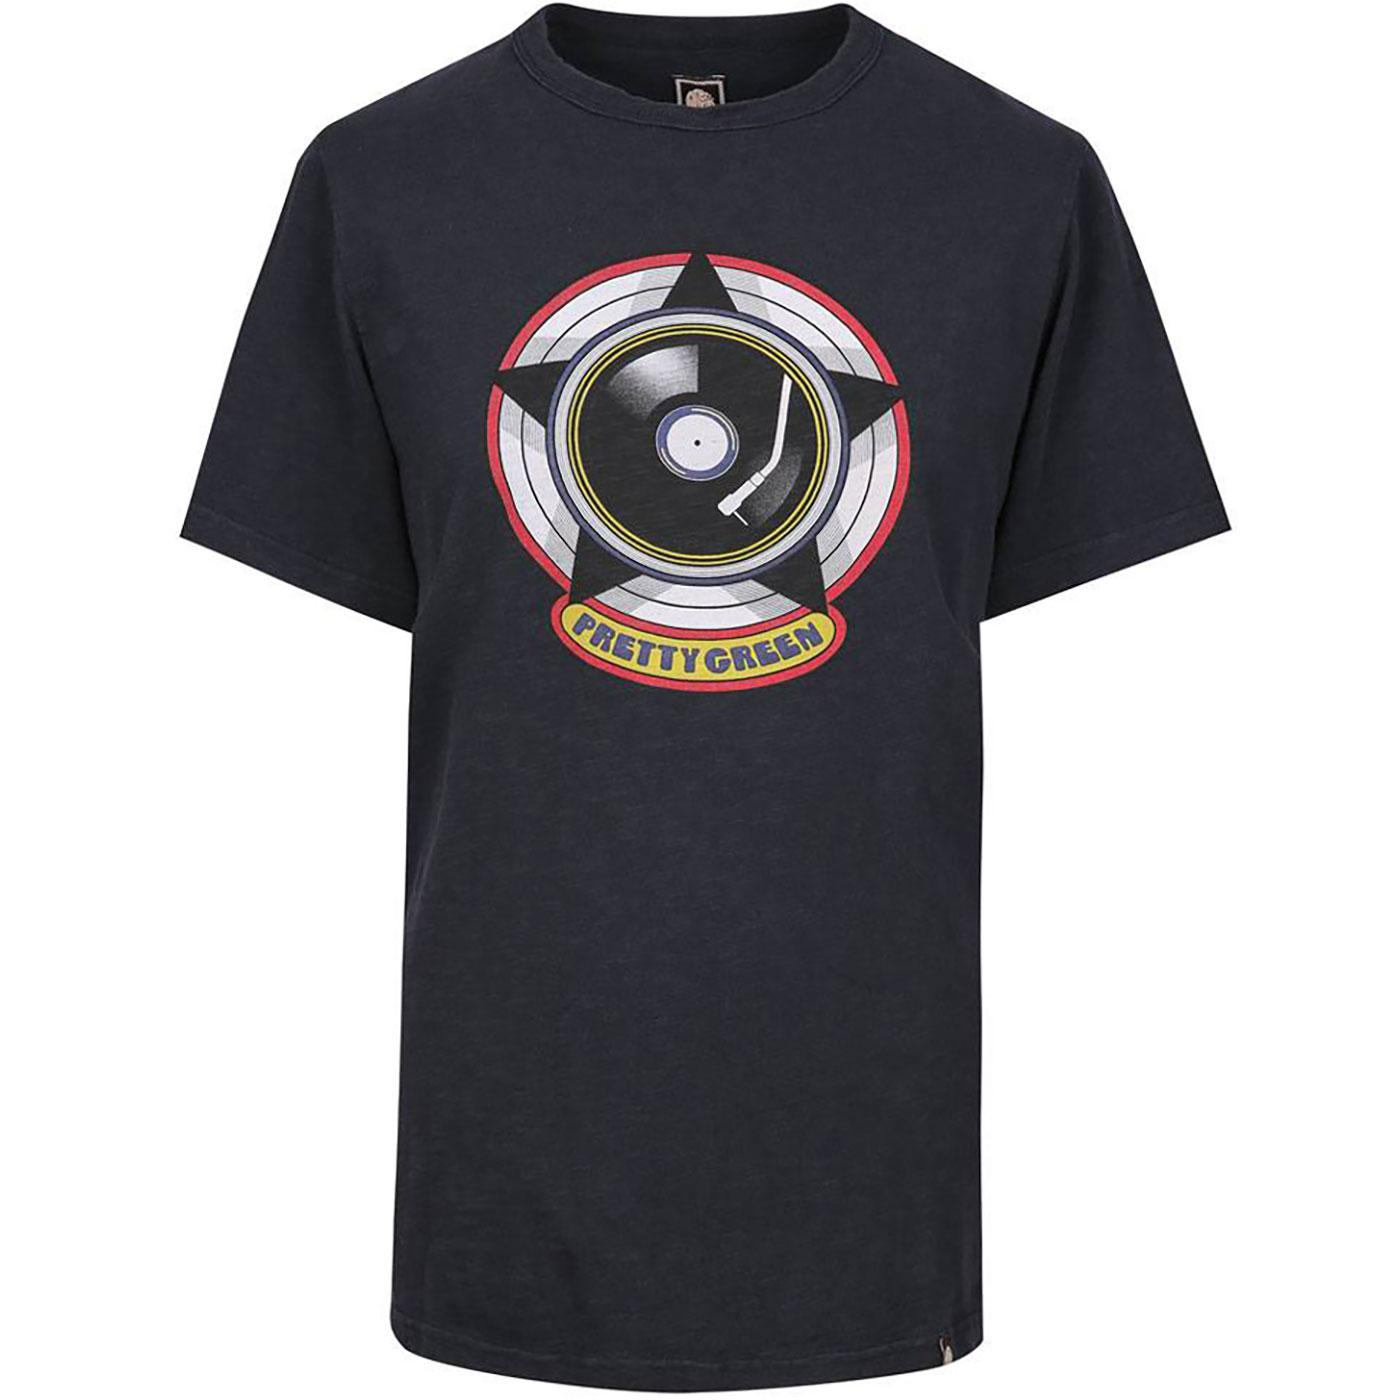 PRETTY GREEN Men's Retro Vinyl Record Logo T-Shirt